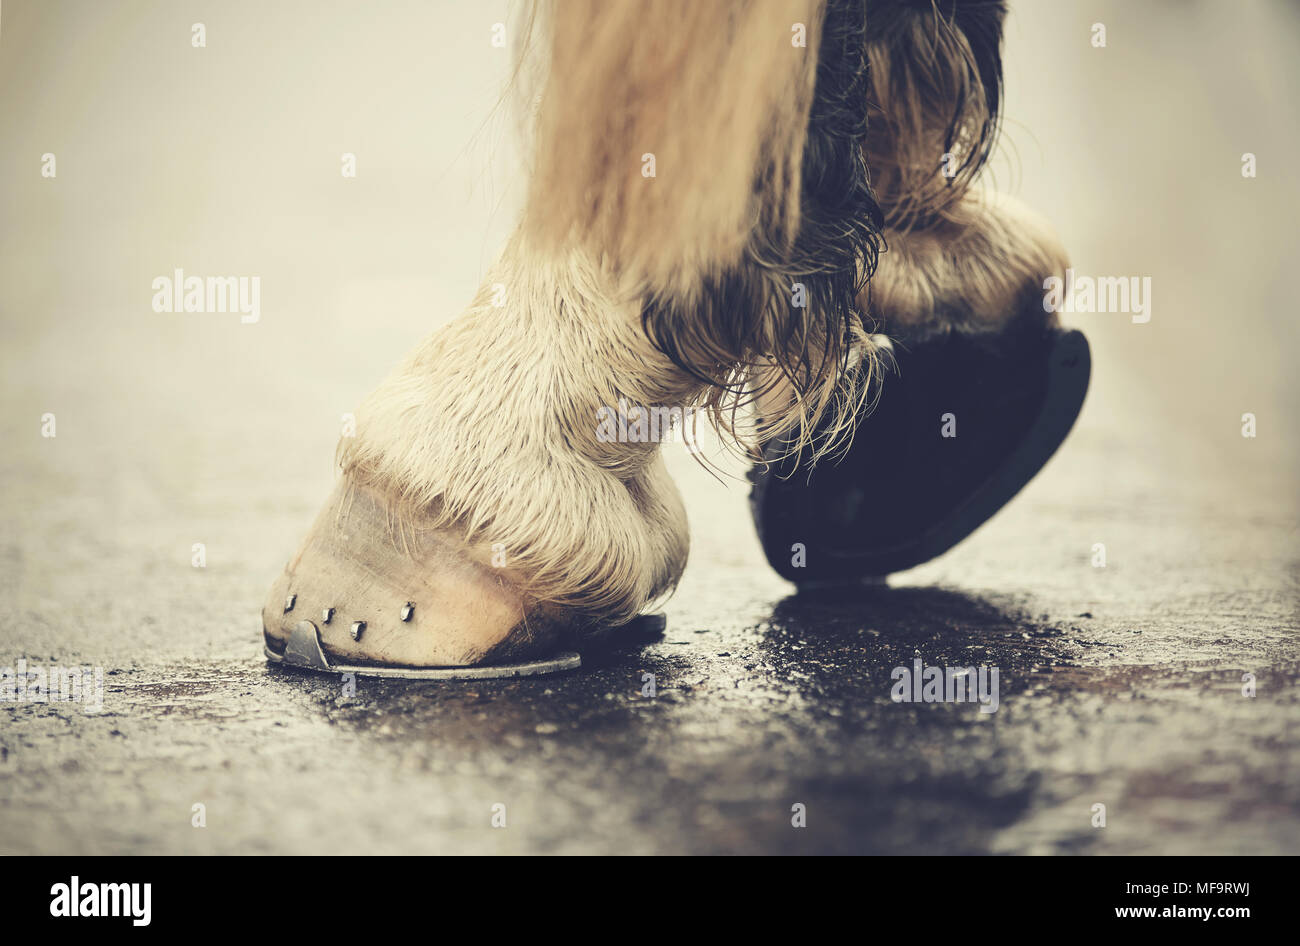 The hoofs with horseshoes. Hoofs of the horse standing on asphalt. - Stock Image